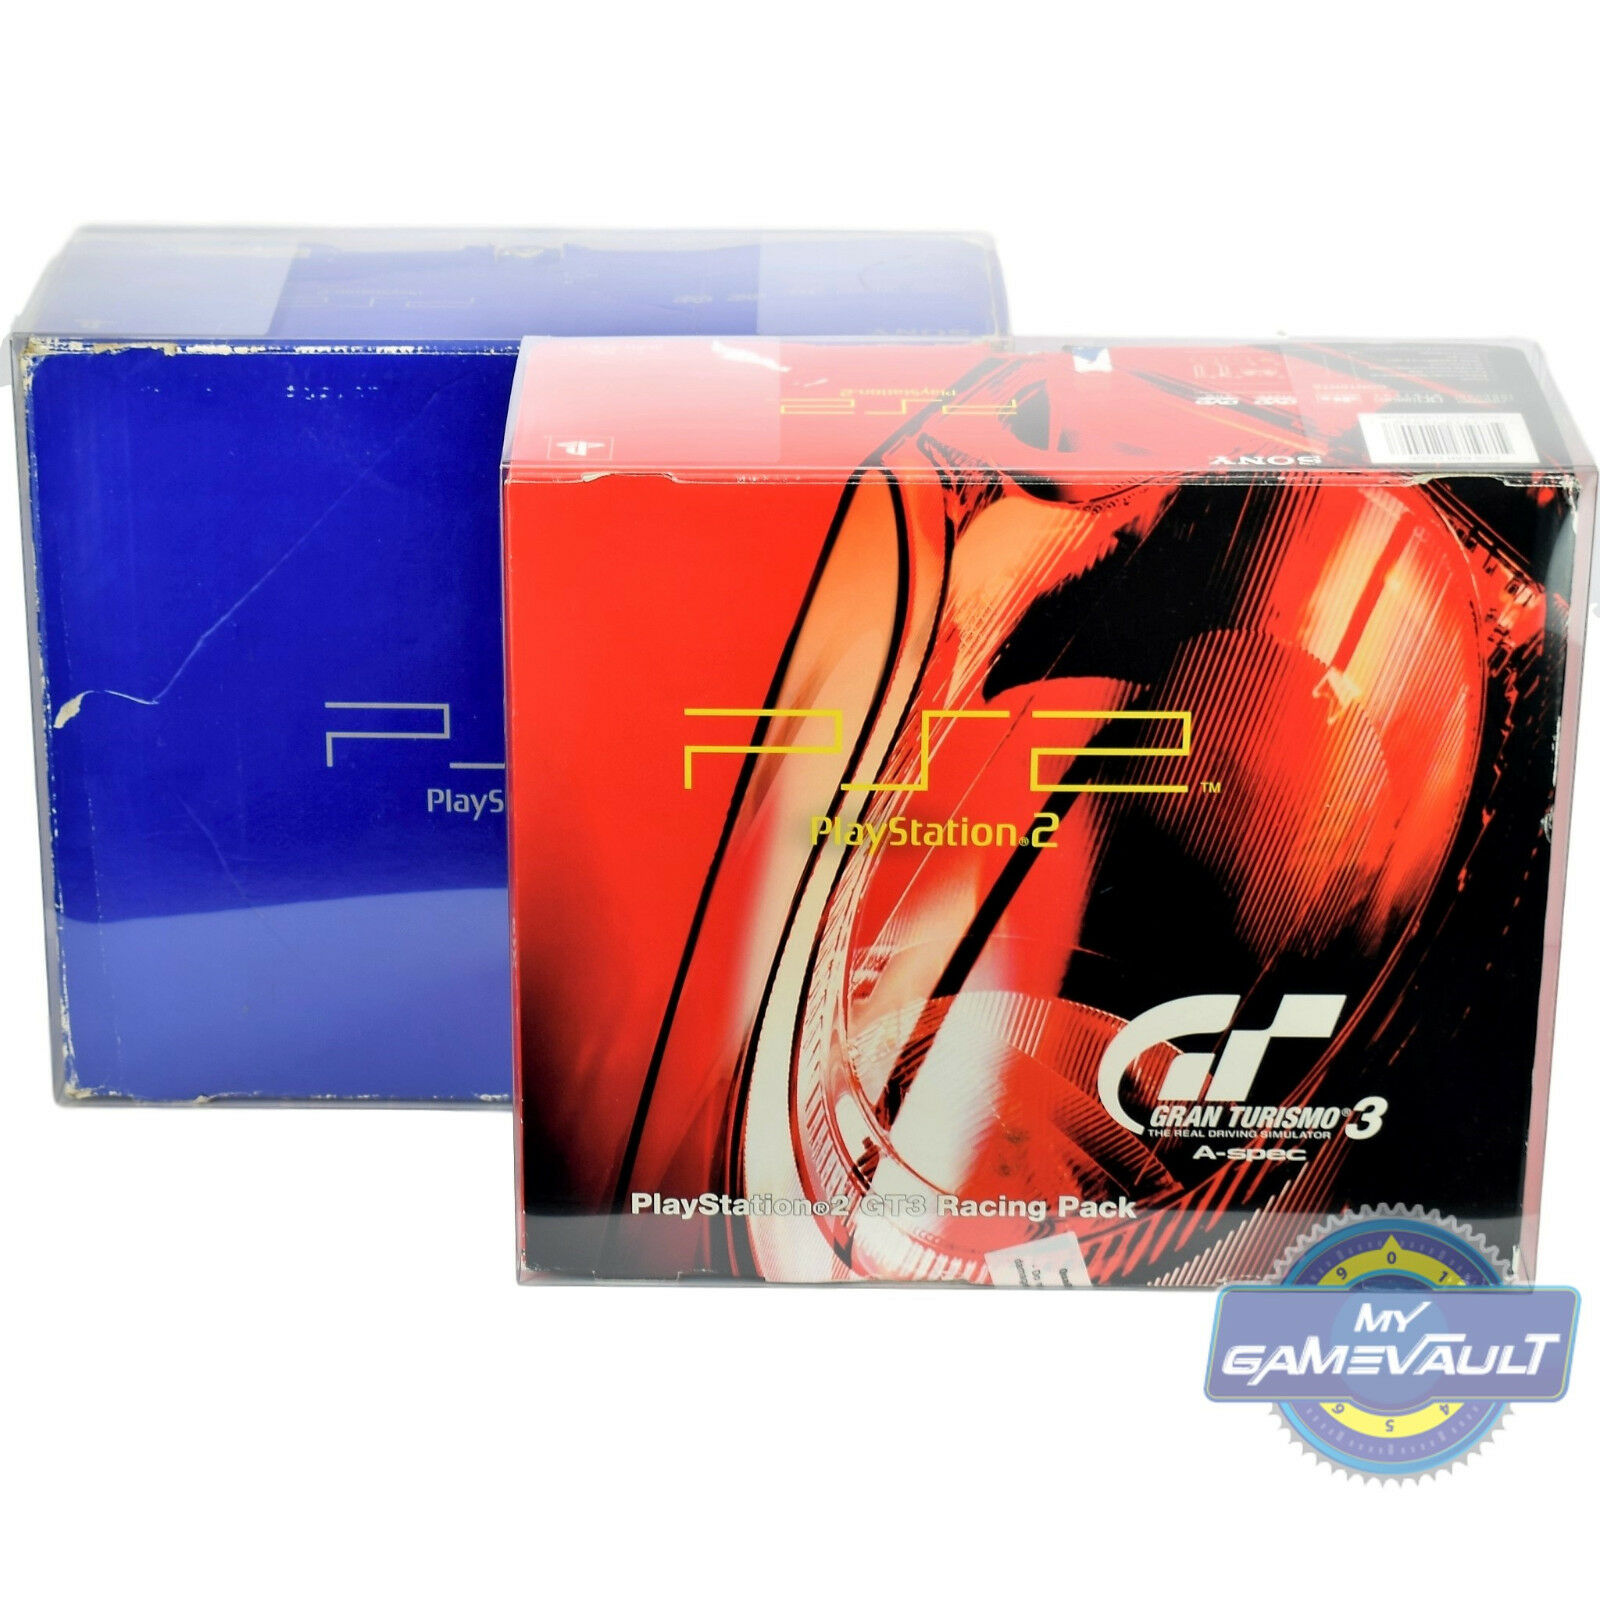 1 Box Protector for PlayStation 2 PS2 Console STRONG 0.5mm Plastic Display Case